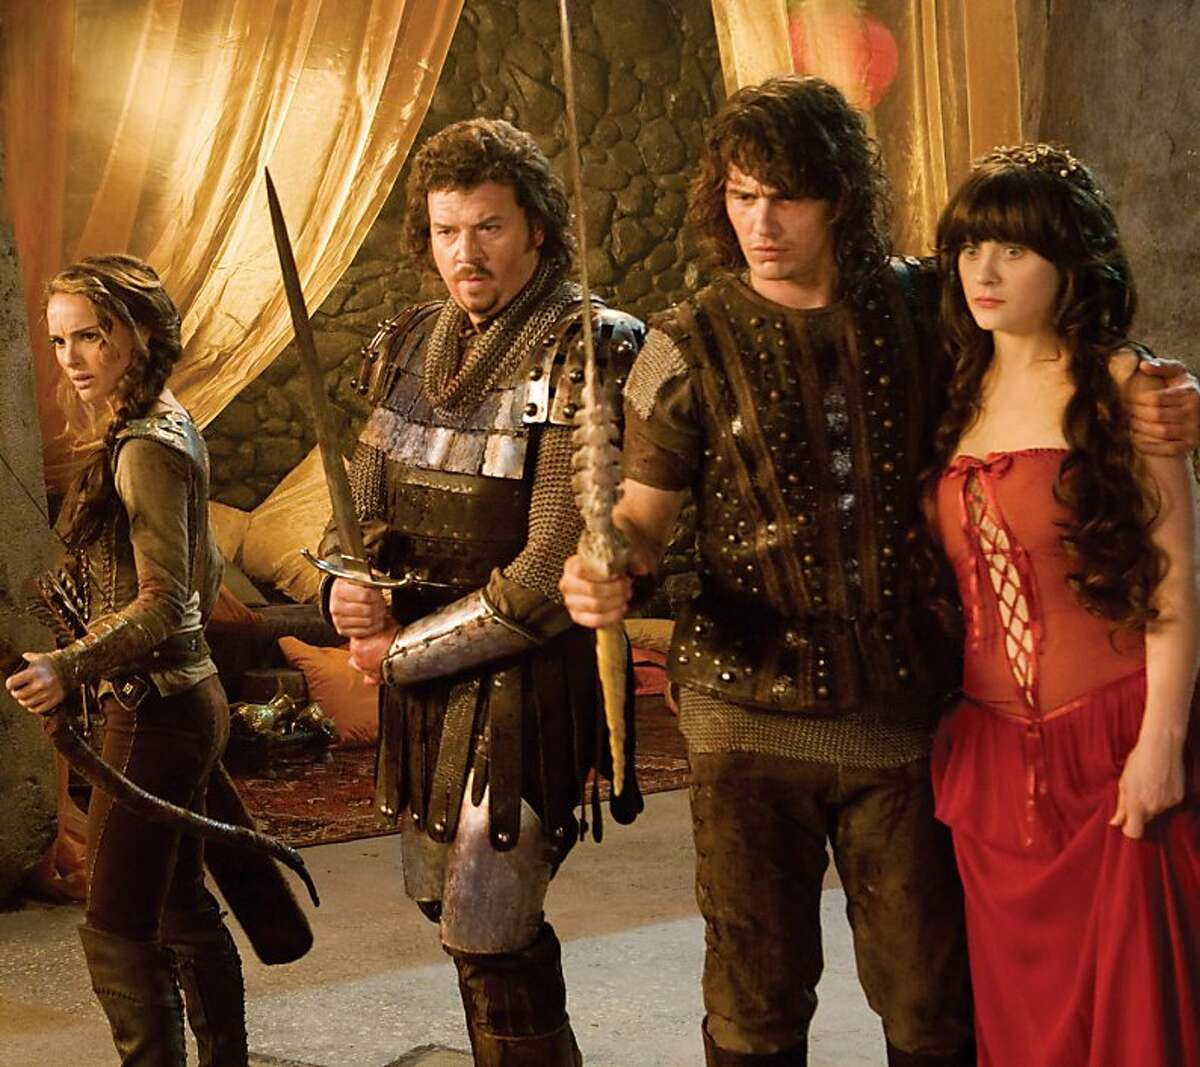 Isabel (Natalie Portman, from left) Thadeous (Danny McBride), Fabious (James Franco) and Belladonna (Zooey Deschanel) star in a comedy-adventure set in a fantastical world,